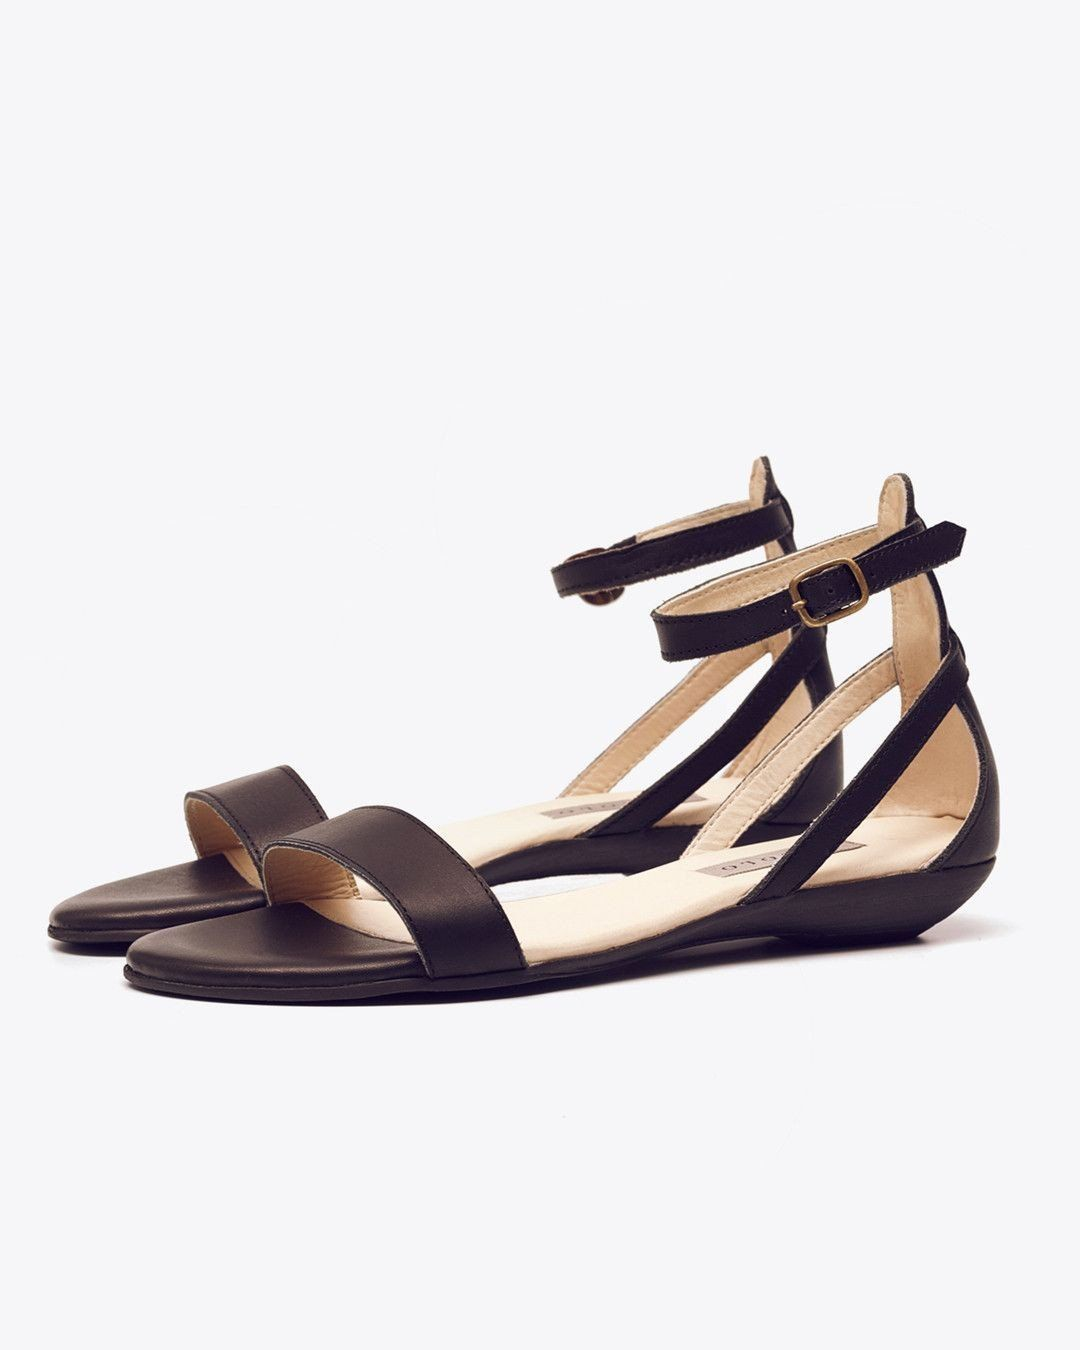 Nisolo Serena Sandal Black Women's Leather Sandal Nisolo